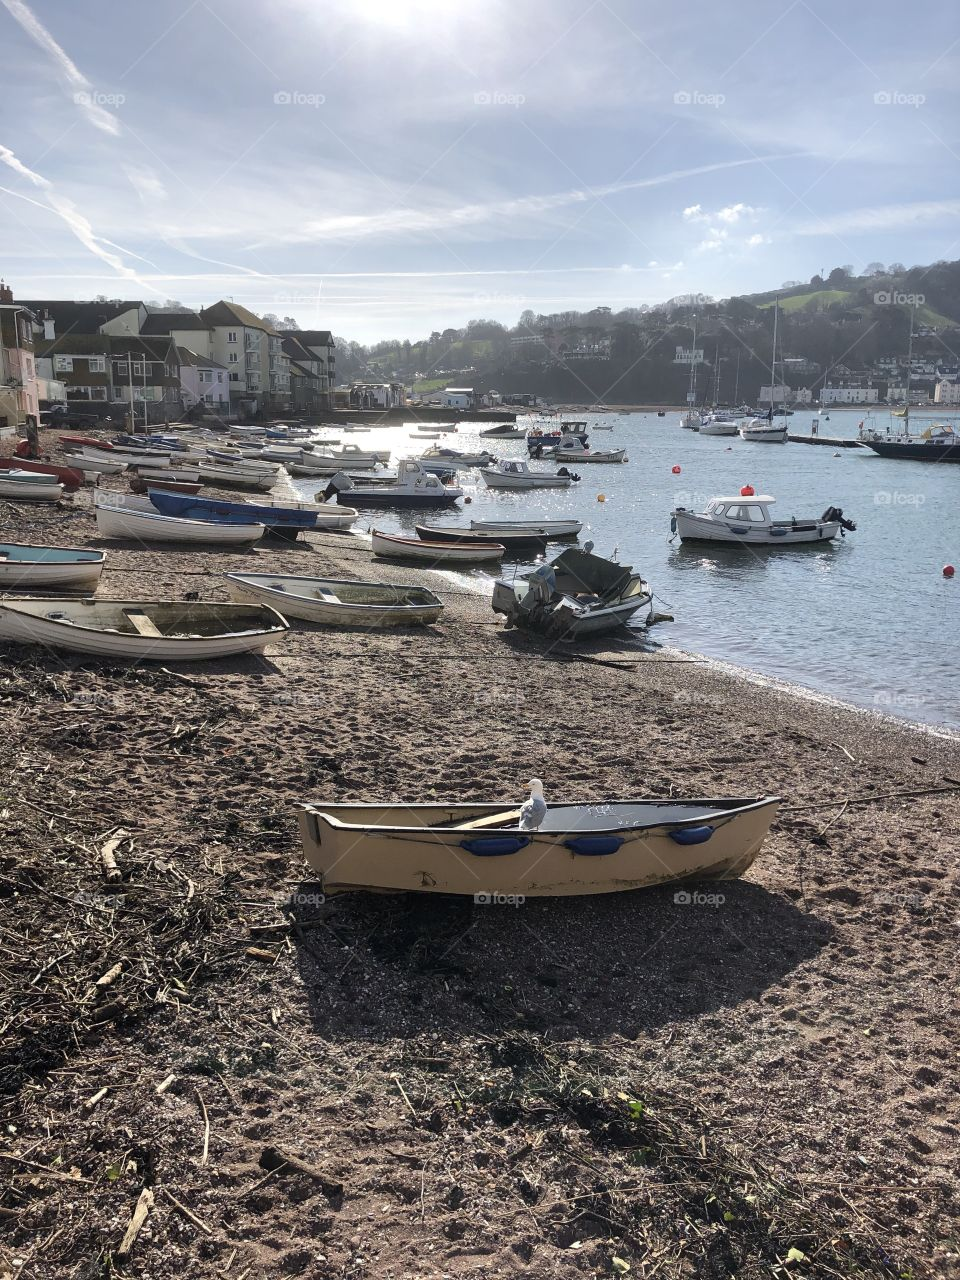 What a view the single swan has, a glorious late winters day in Teignmouth, Devon today Feb 2019